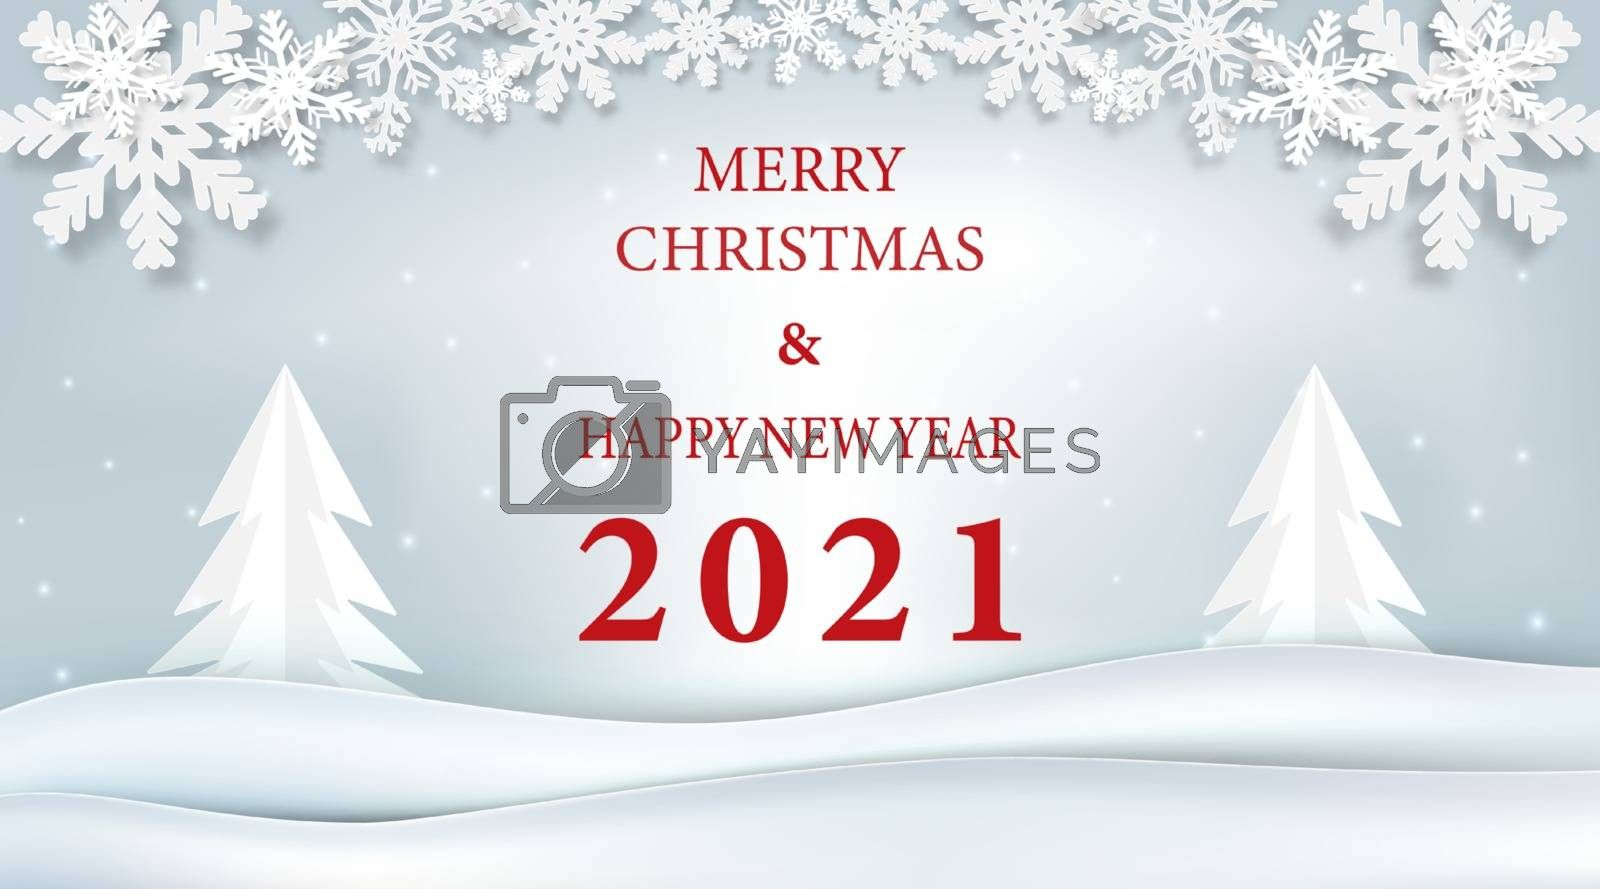 Christmas and New year 2021 season and snowflake paper art, paper craft style winter illustration